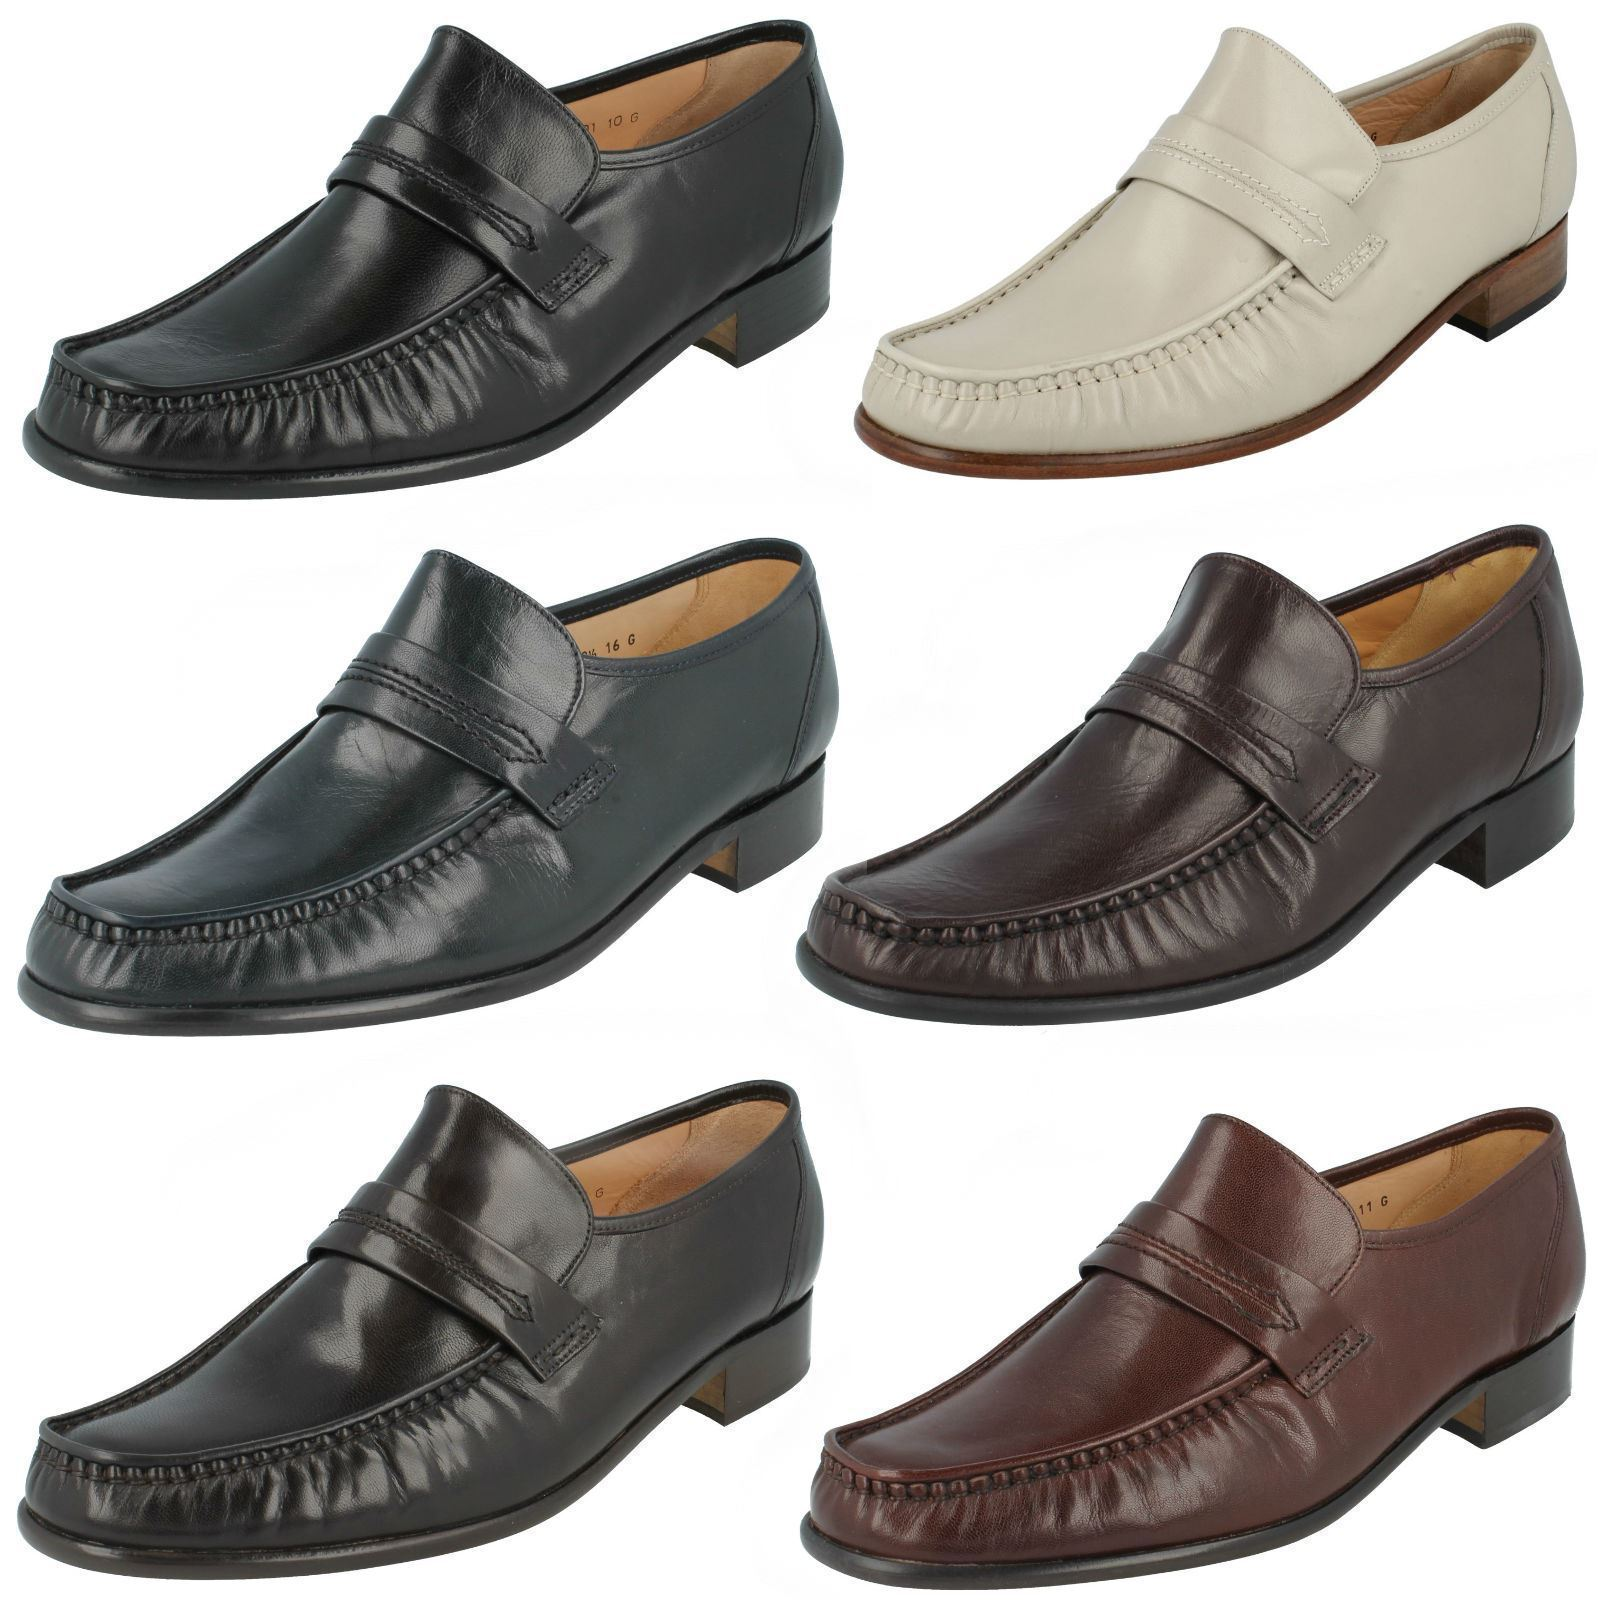 Men's Grenson Formal shoes - Watford